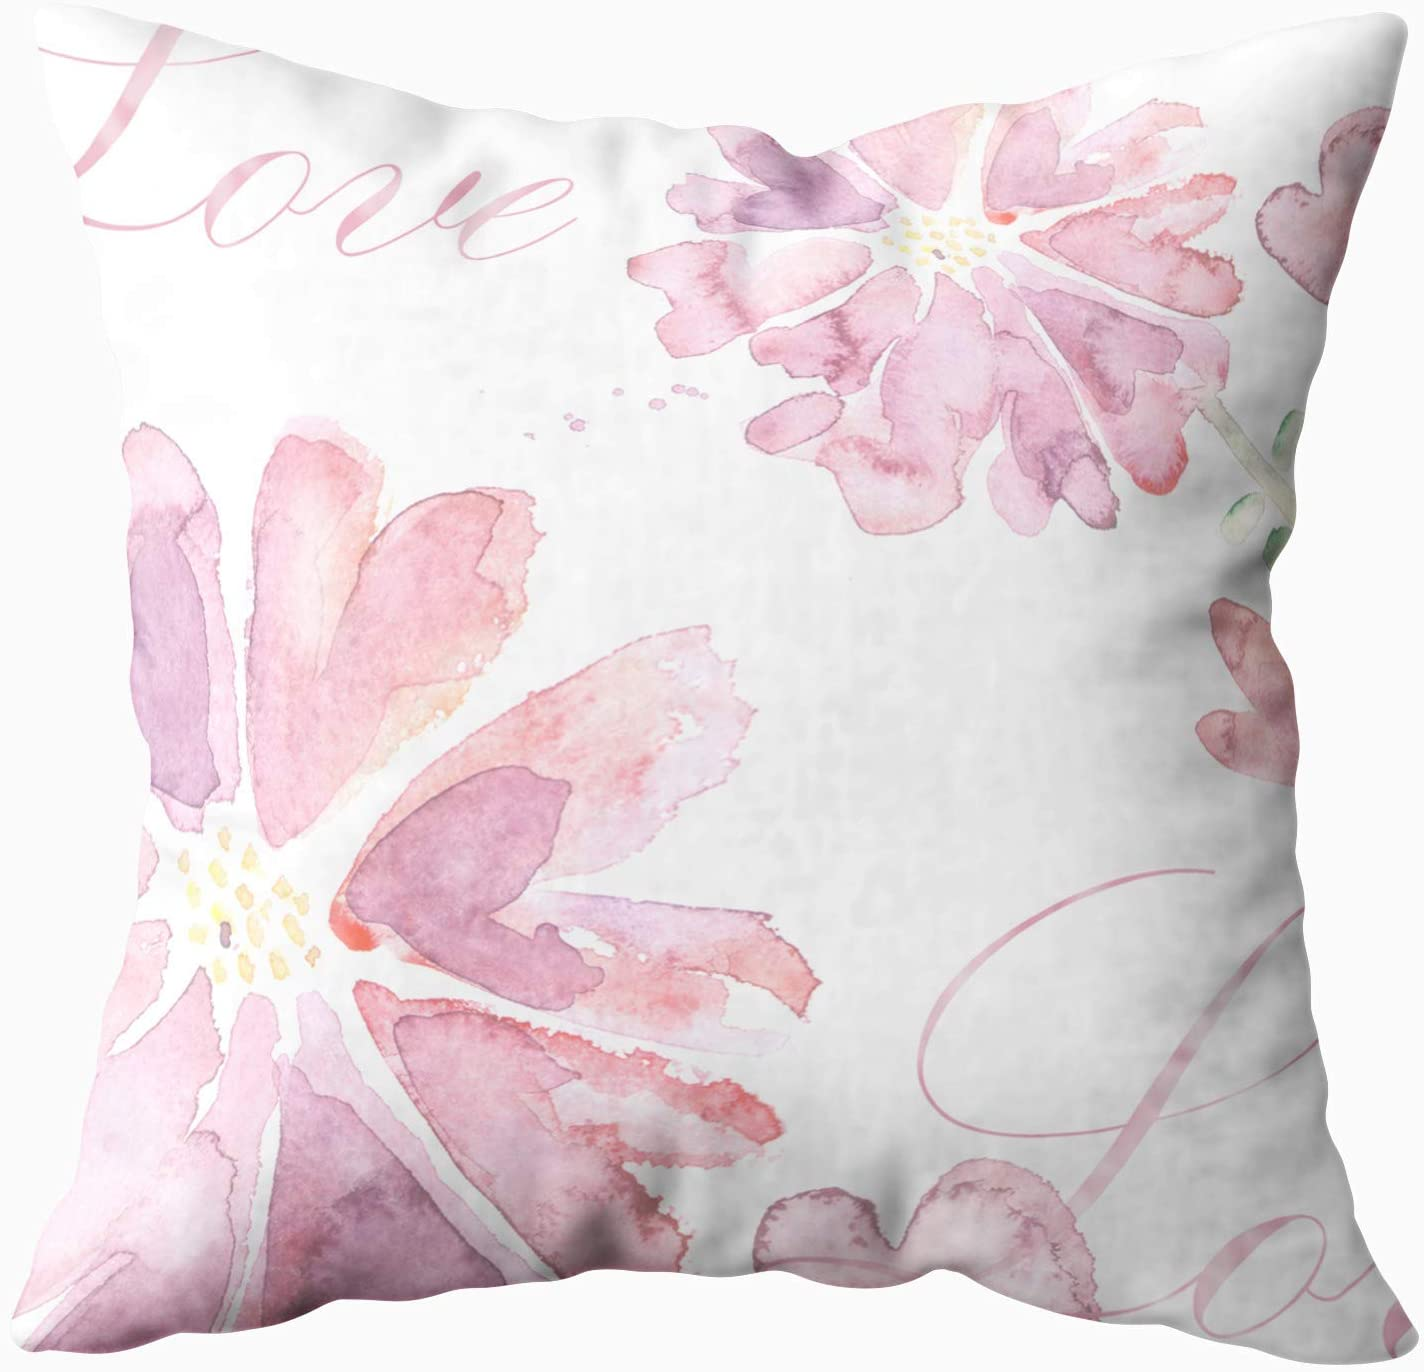 Amazon Com Emmteey Decorative Pillows For Couch 16x16 Pillow Covers Home Throw Pillow Covers For Sofa Beautiful Spring Pink Flowers Watercolor Illustration Floral Background Love Square Double Sided Printing Home Kitchen